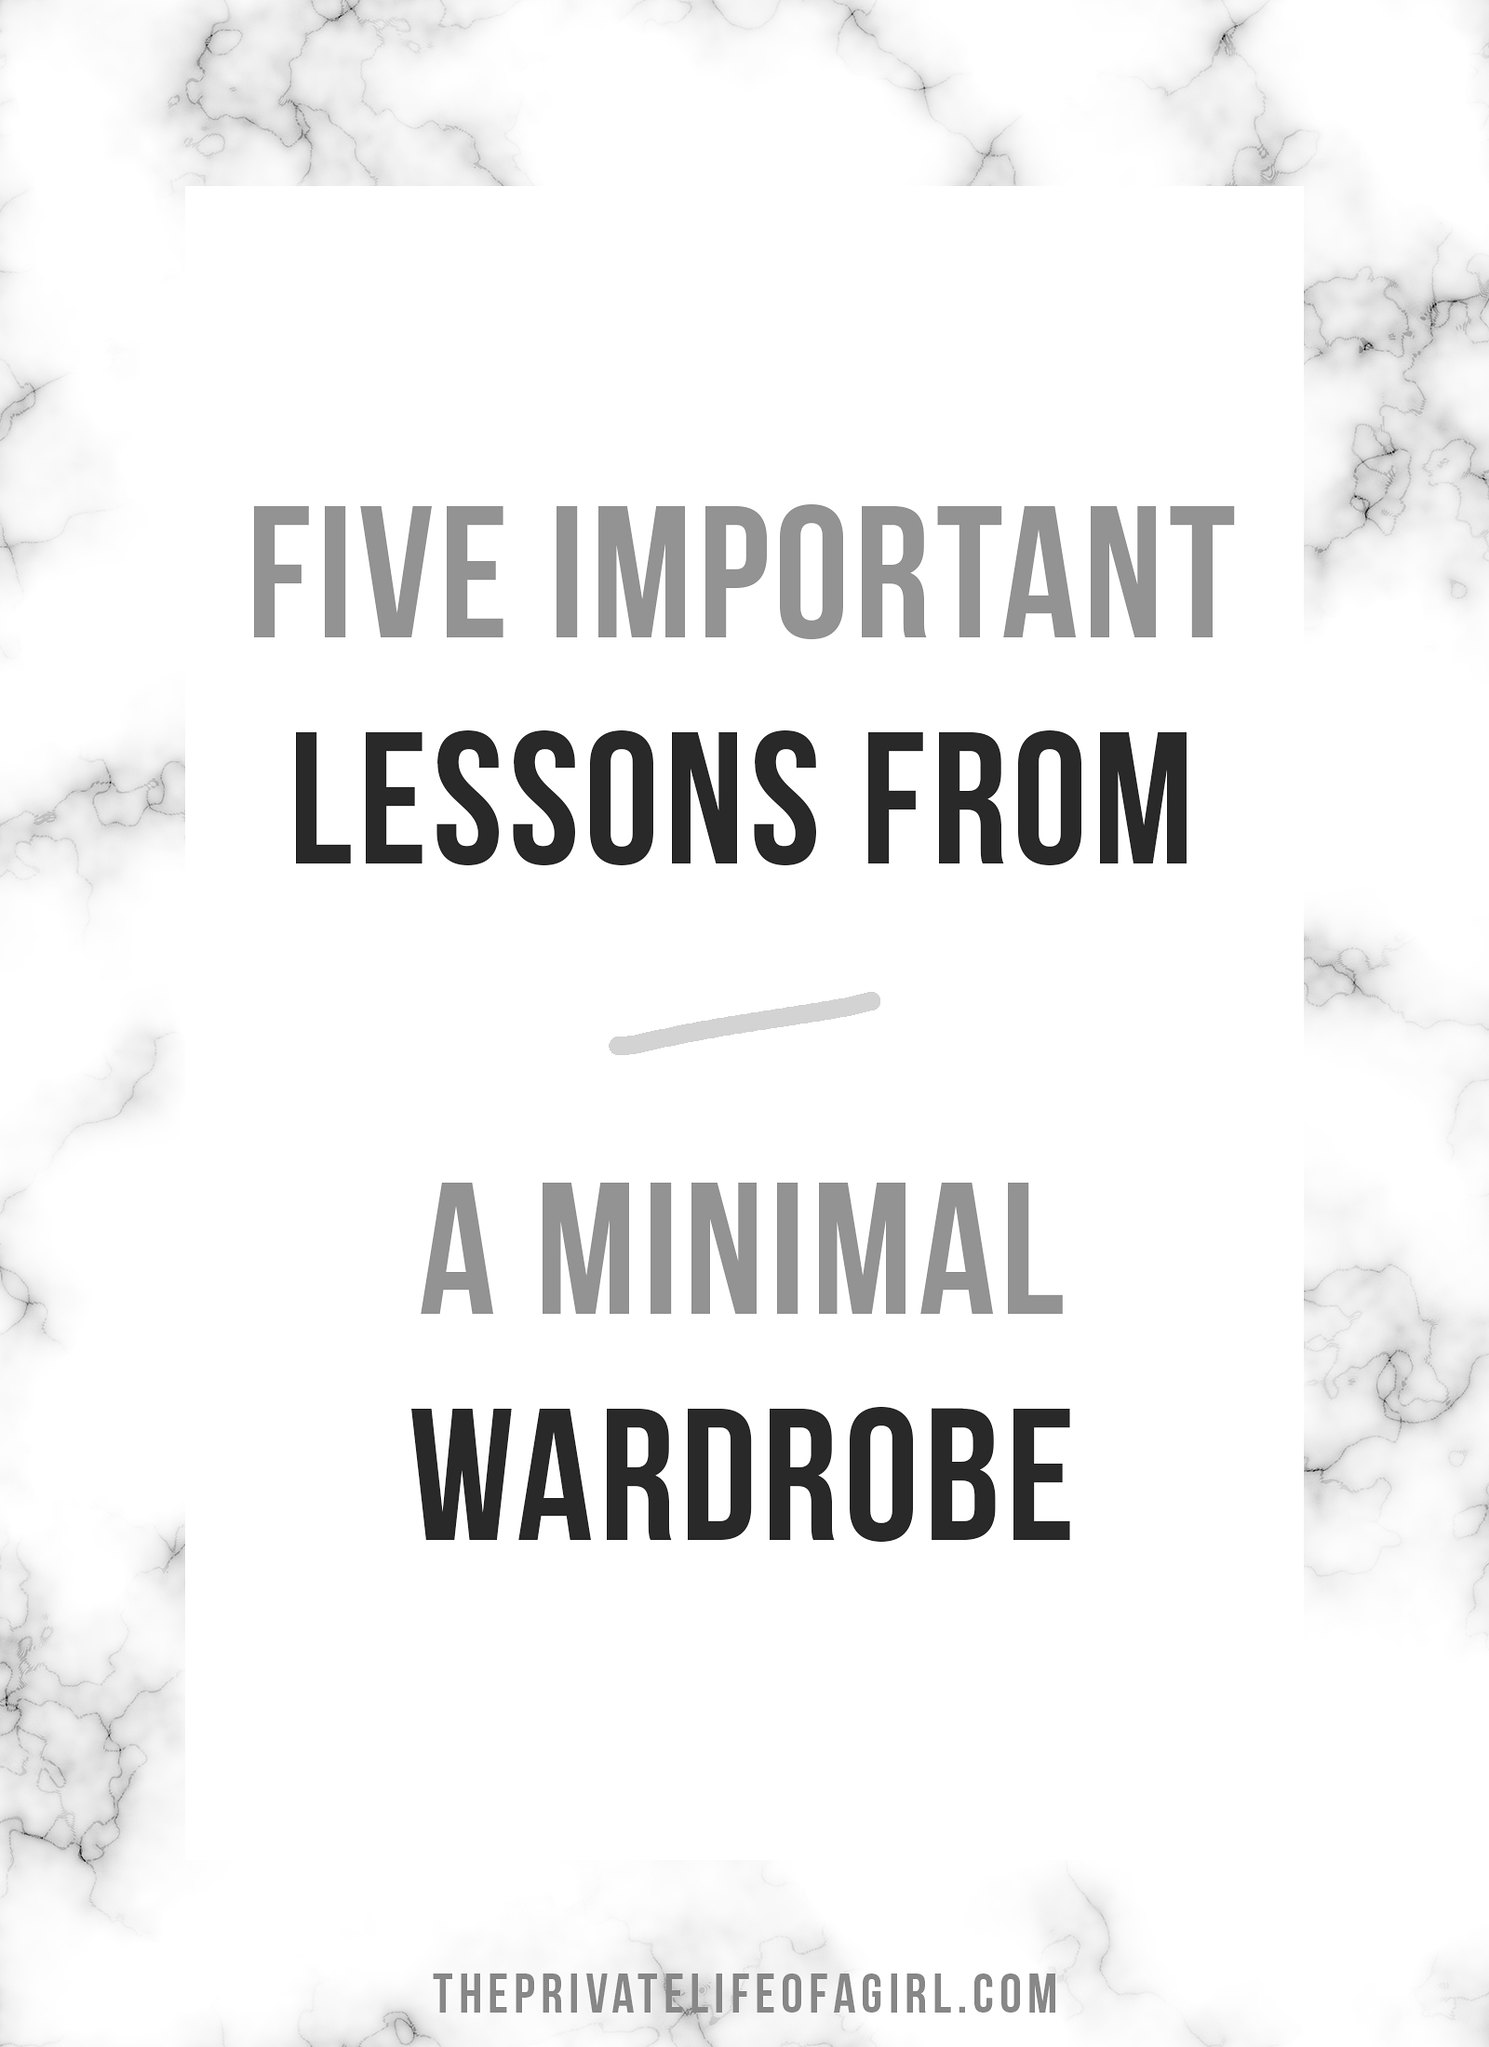 5 Important Lessons A Minimal Wardrobe Will Teach You